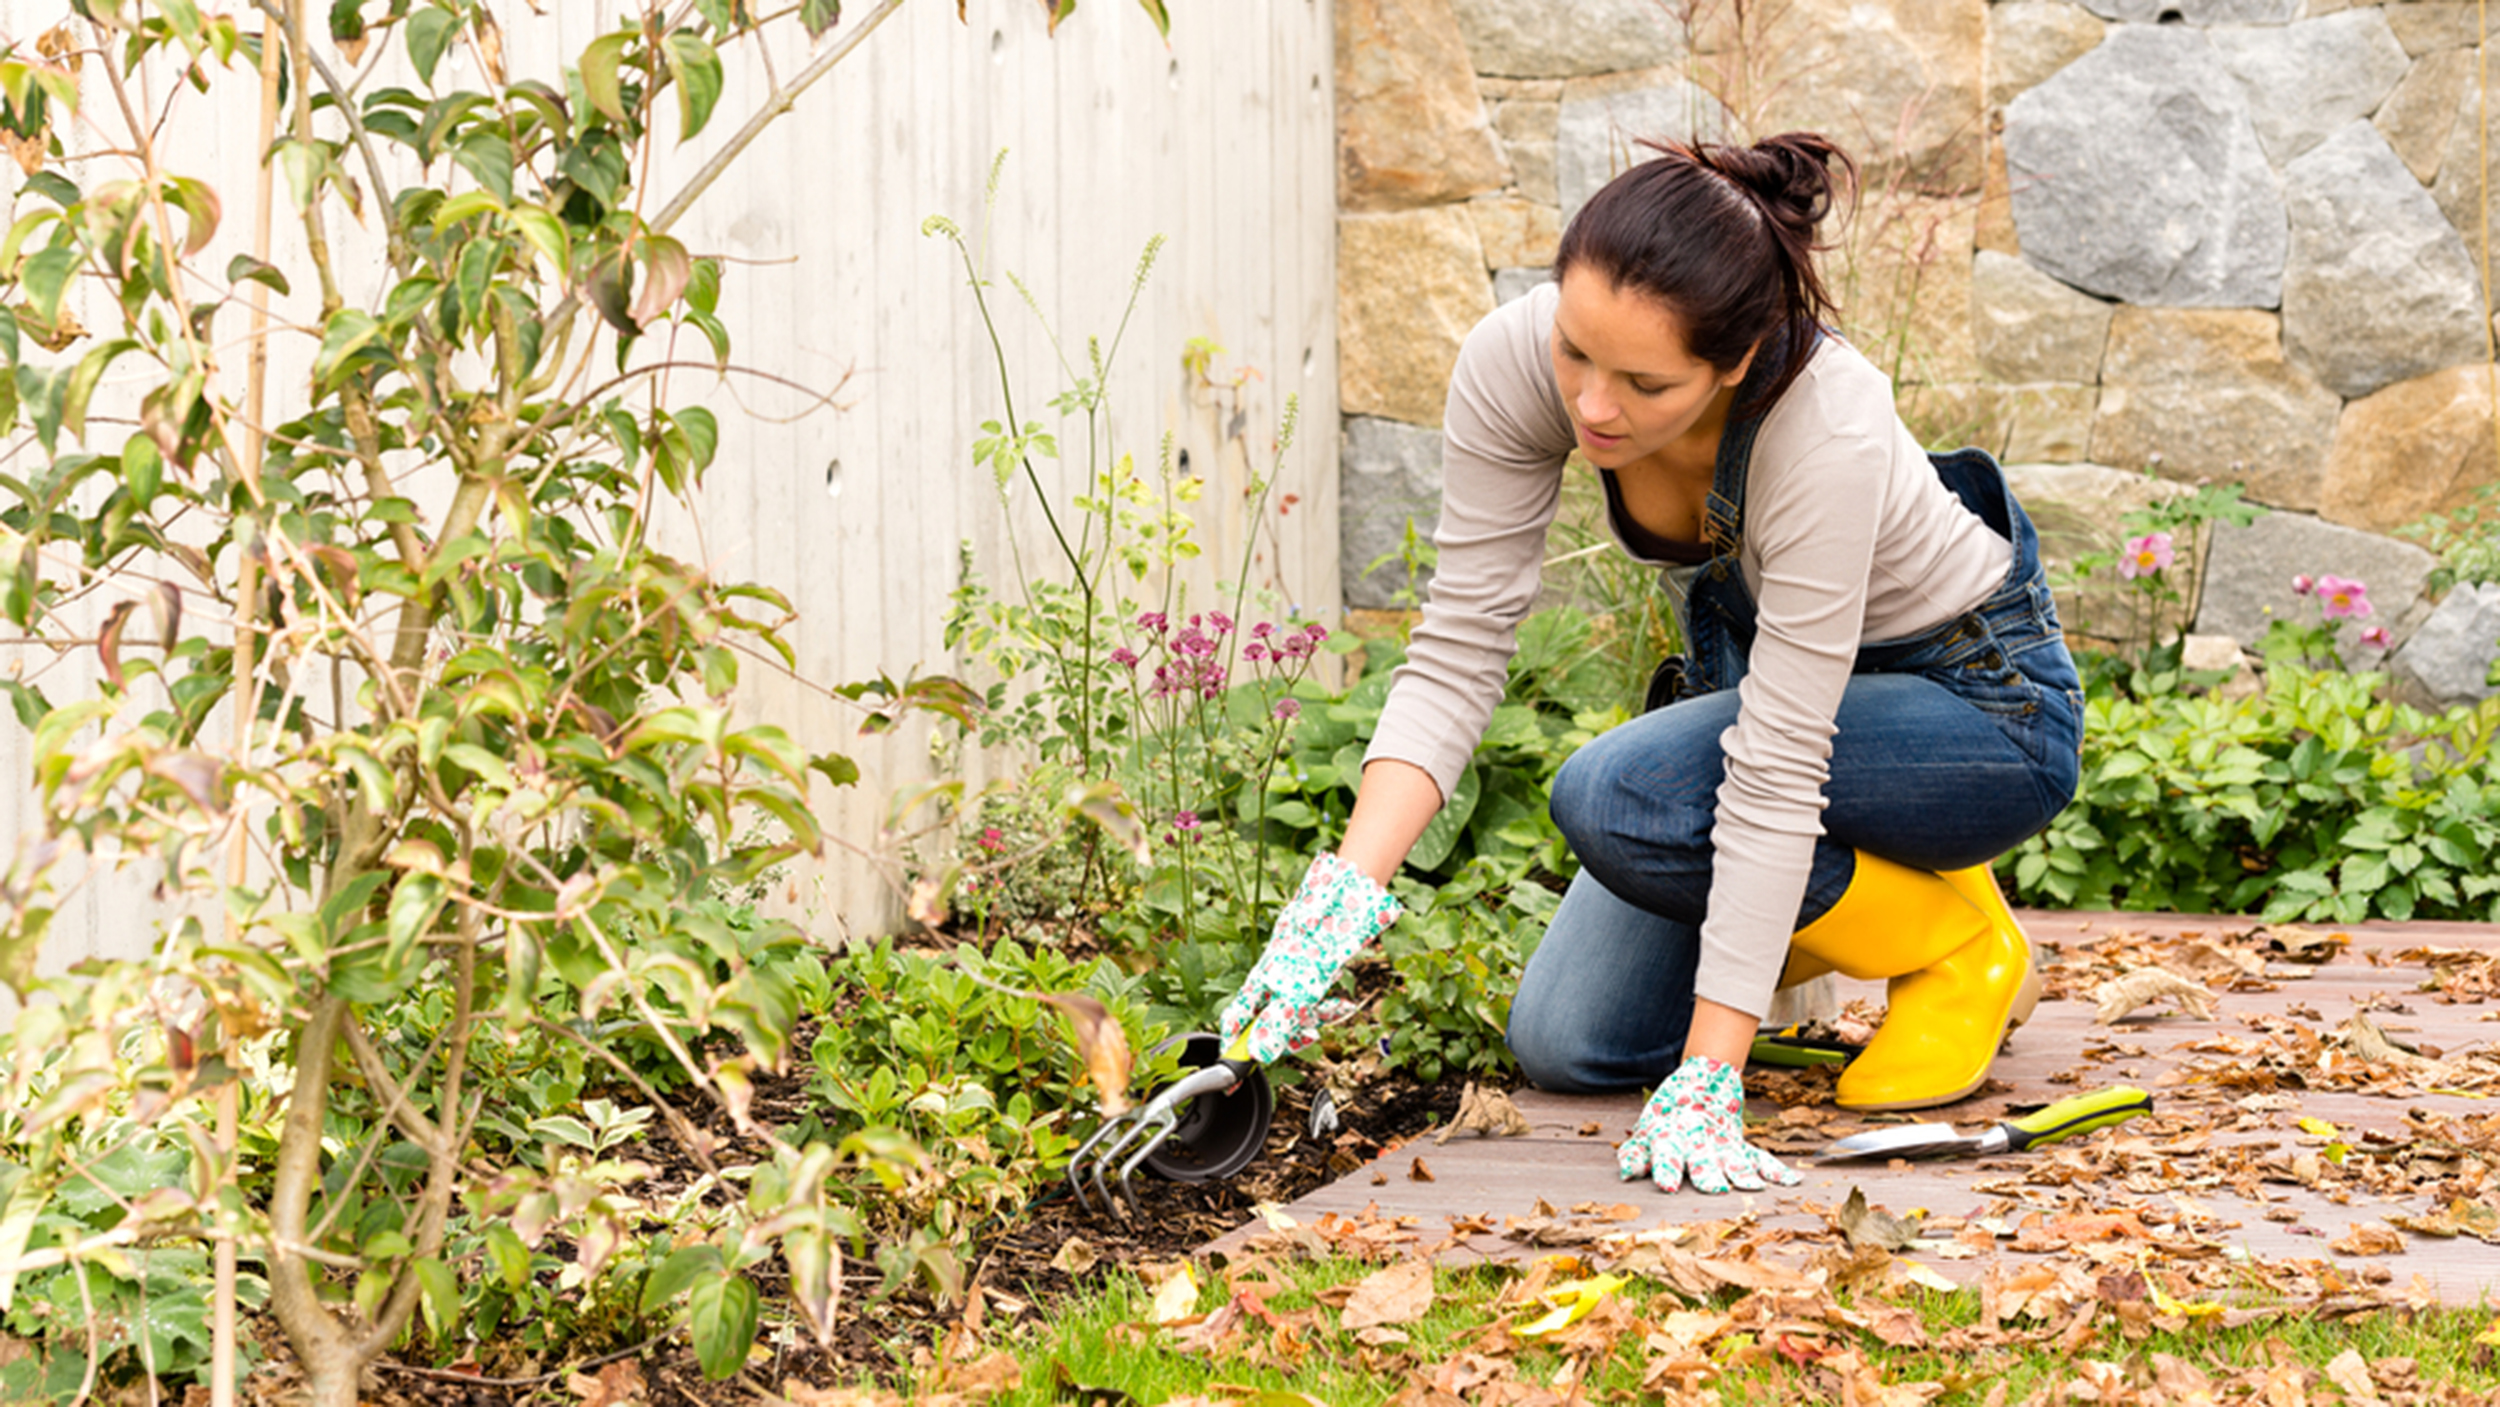 How to prepare your garden for winter - Gardening works in october winter preparations ...